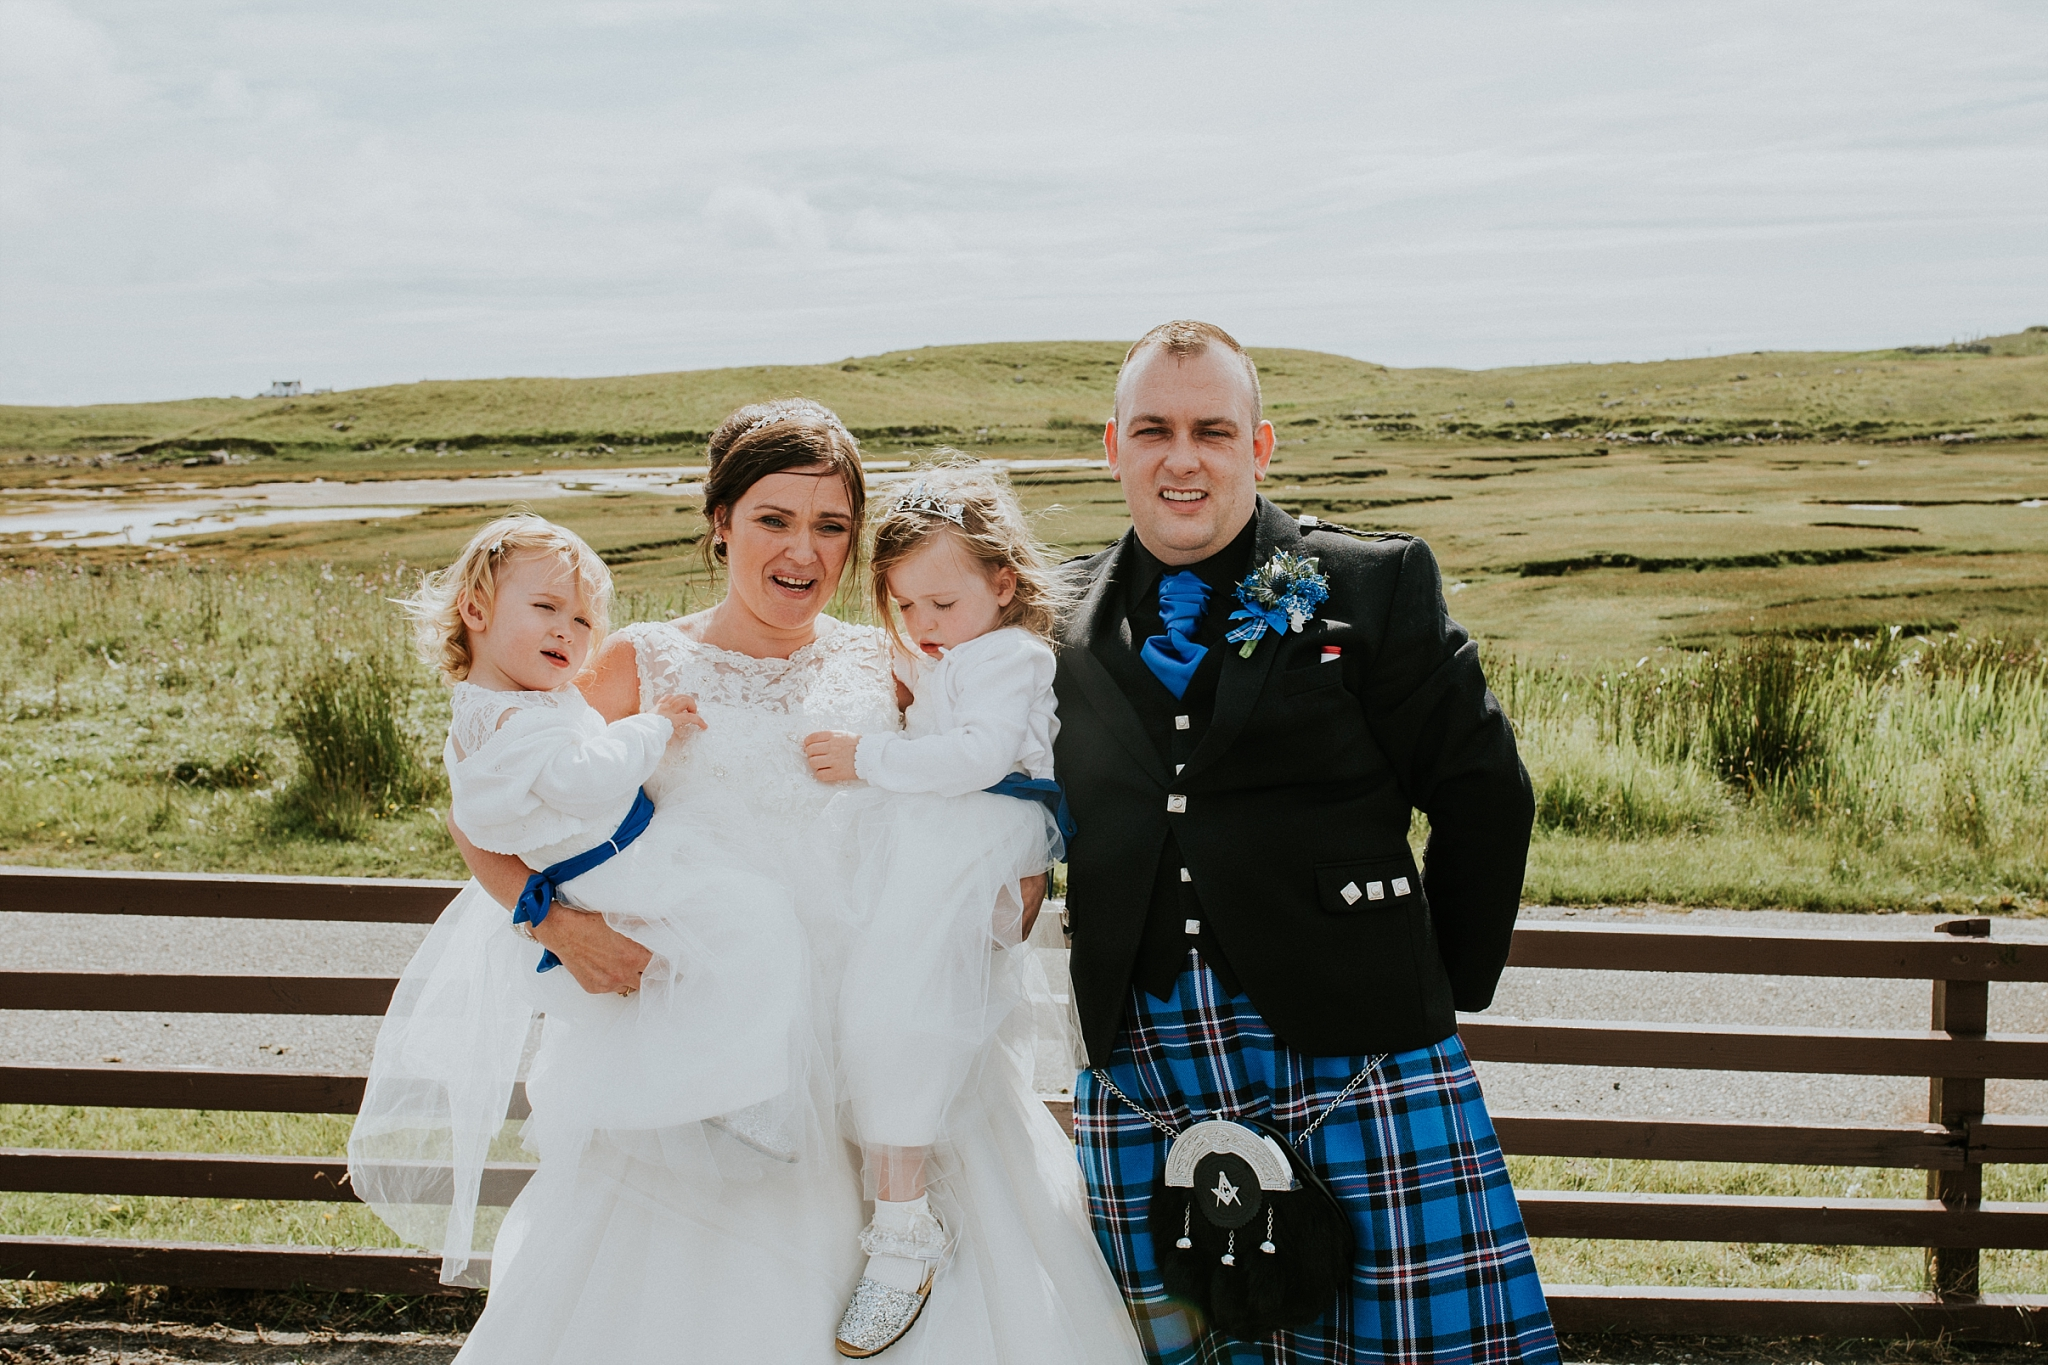 bride and groom with two flower girls, family photo